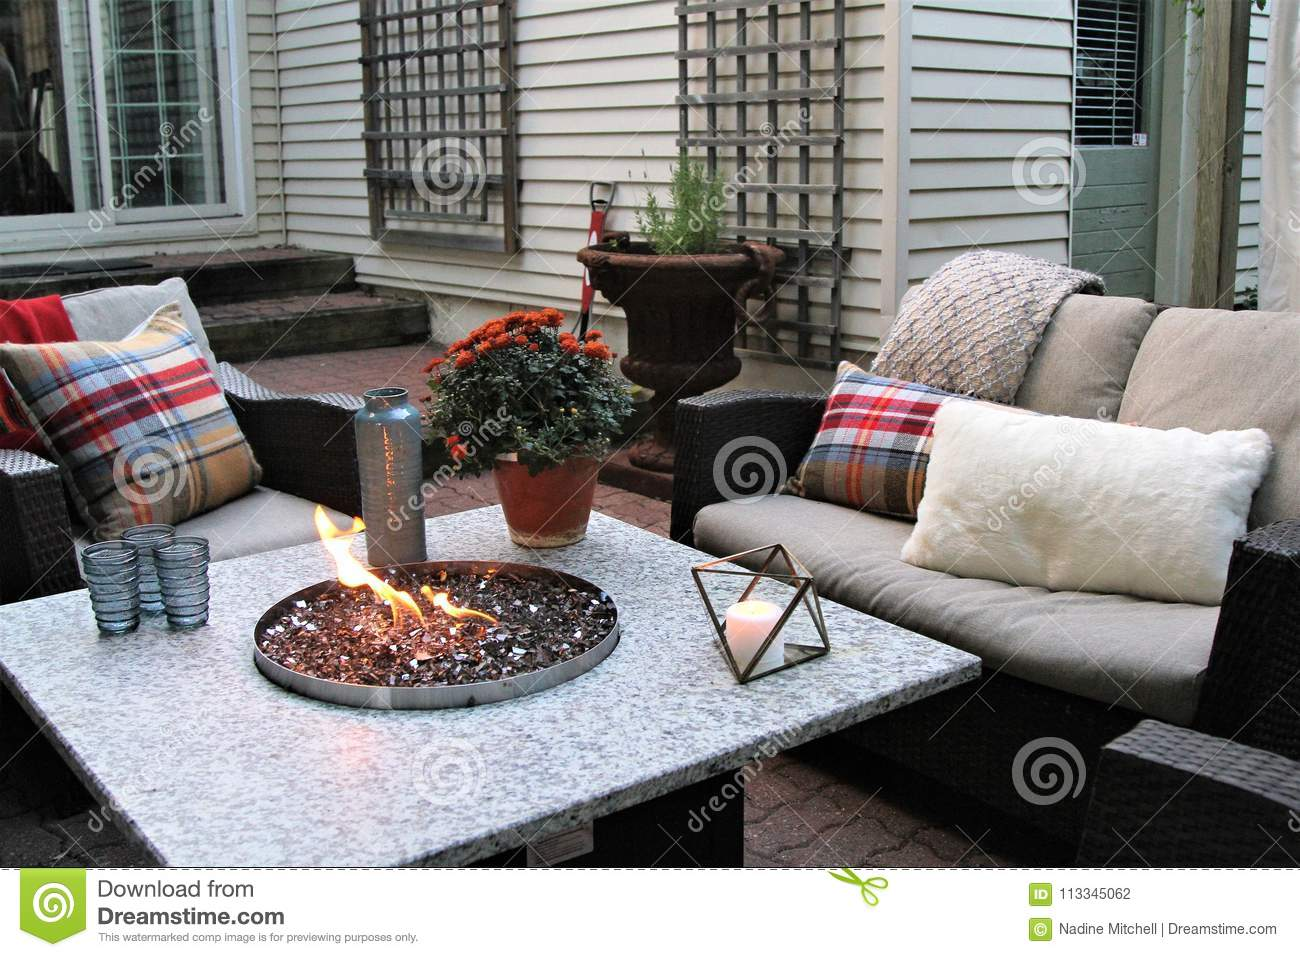 Outdoor Seating Arrangement Around A Gas Fire Pit Table In The Fall Stock Photo Image Of Plant Warm 113345062